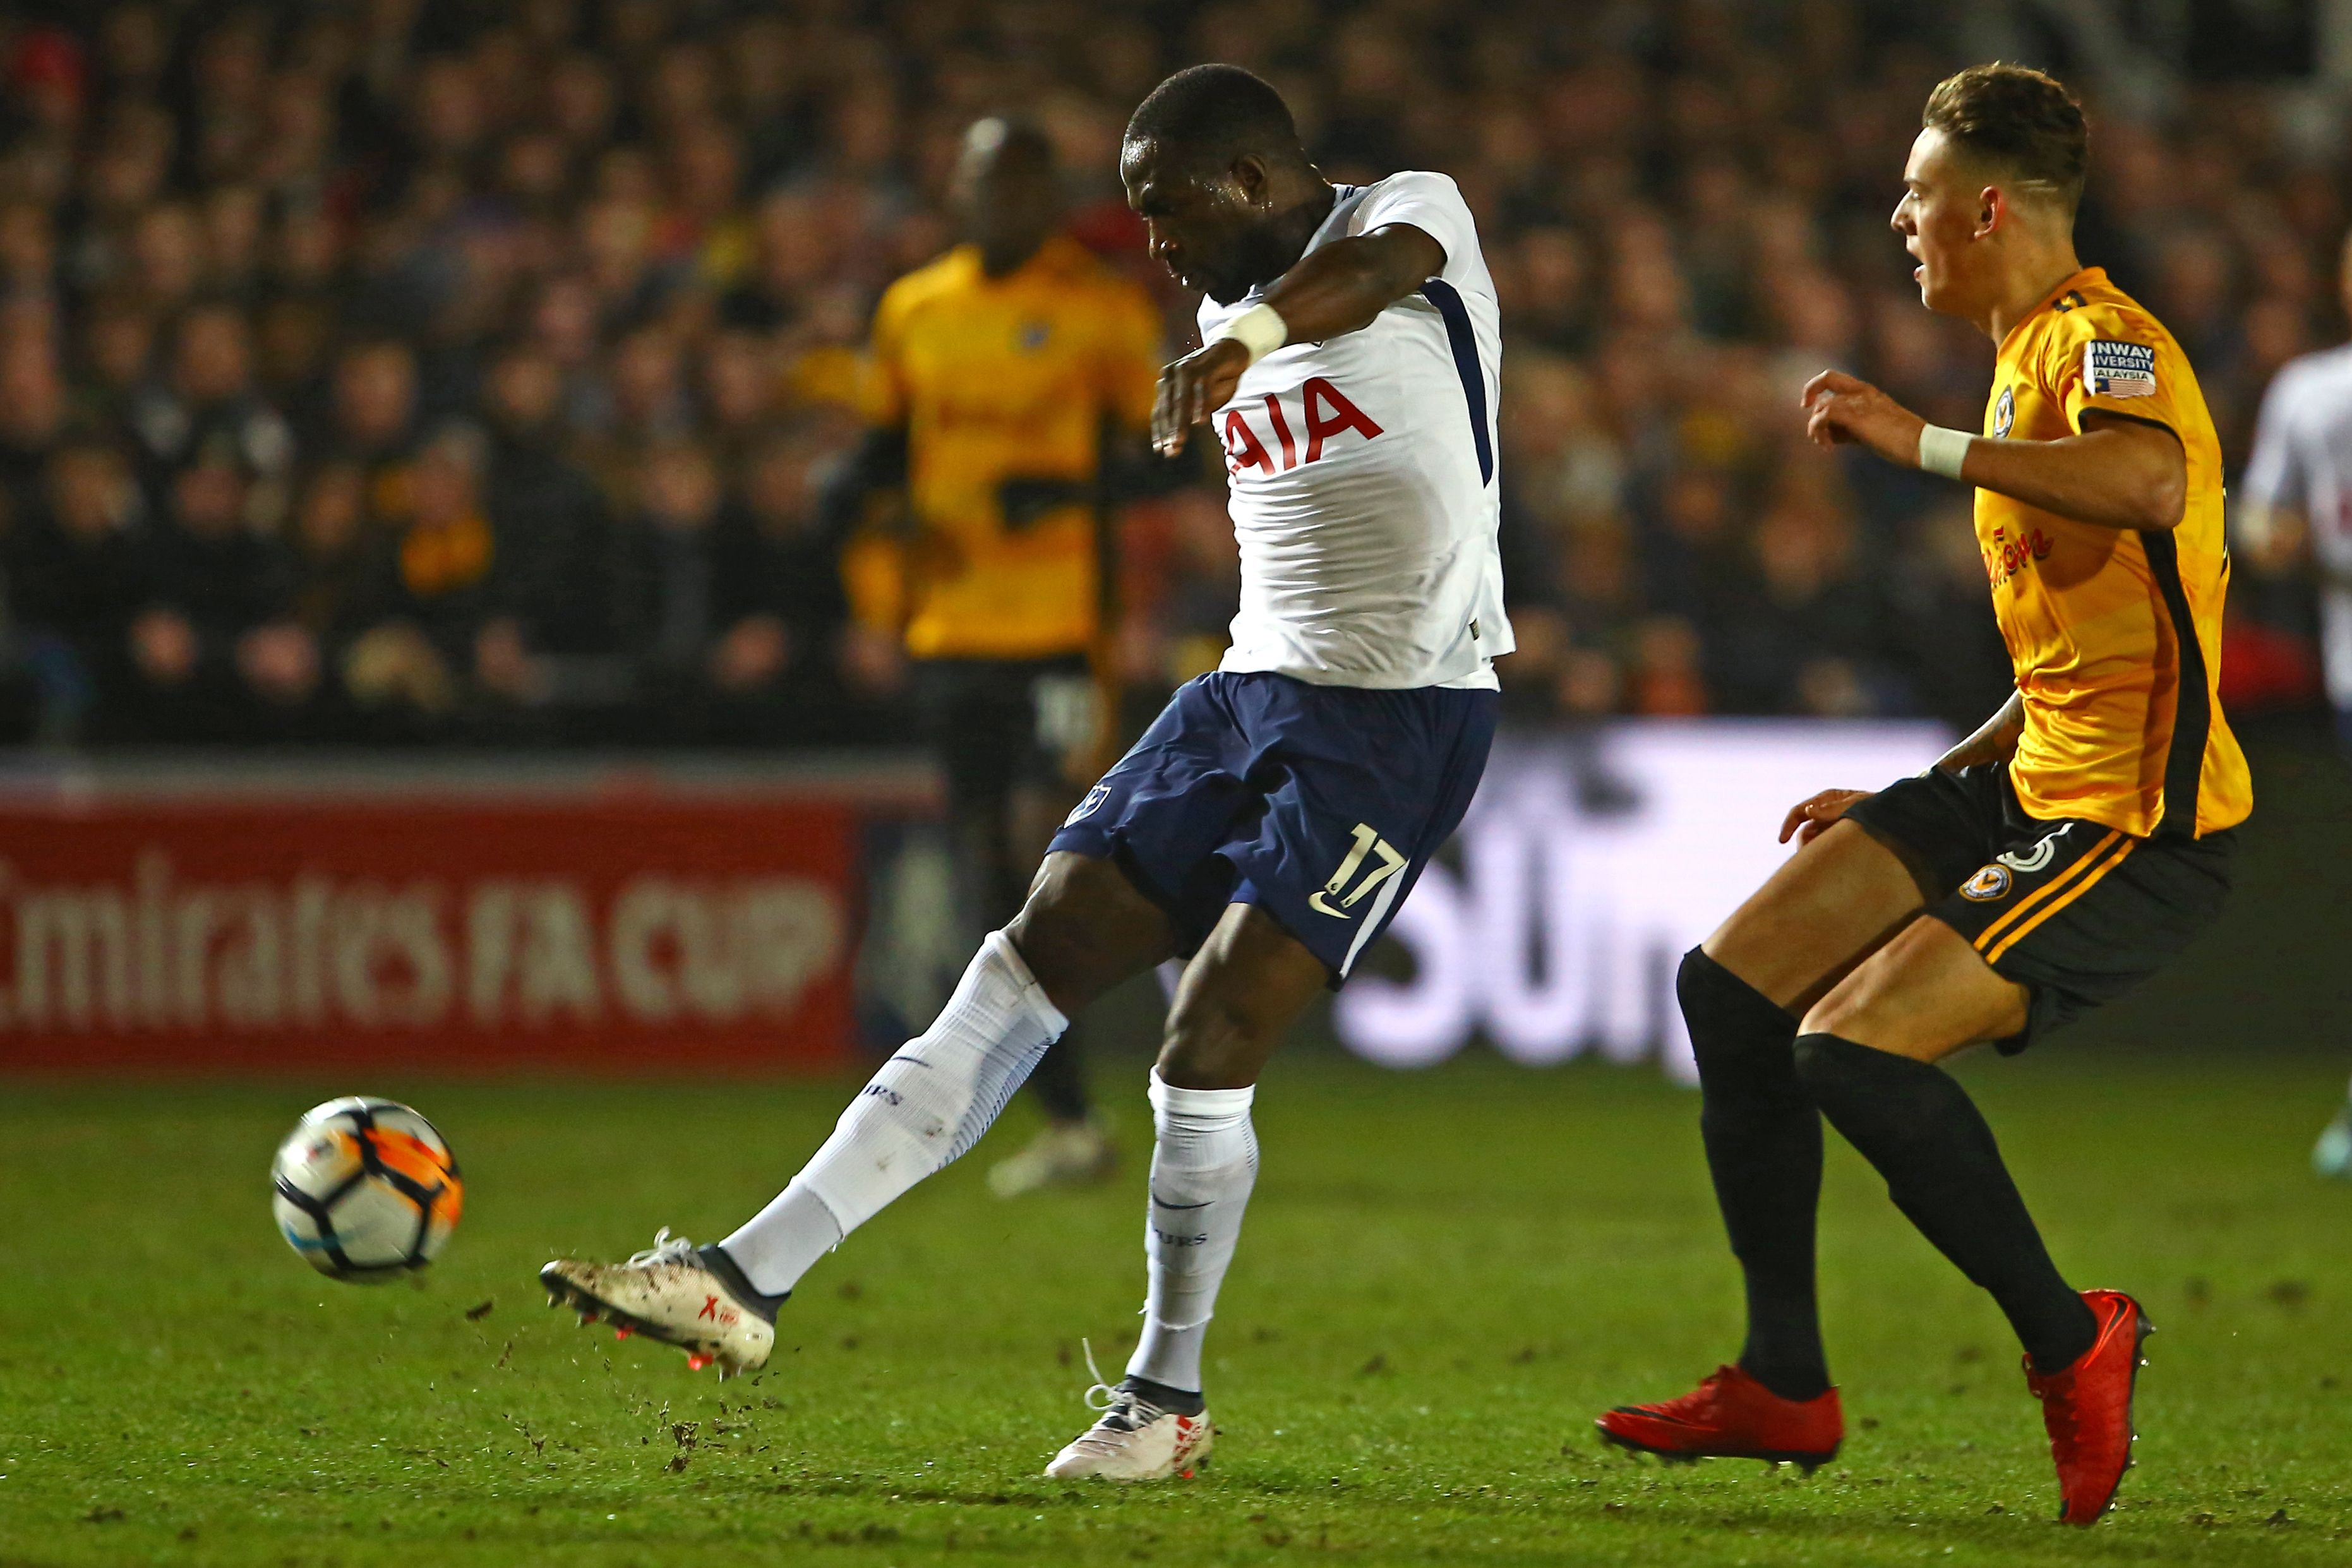 Moussa Sissoko has an unsuccessful shot against Newport County.